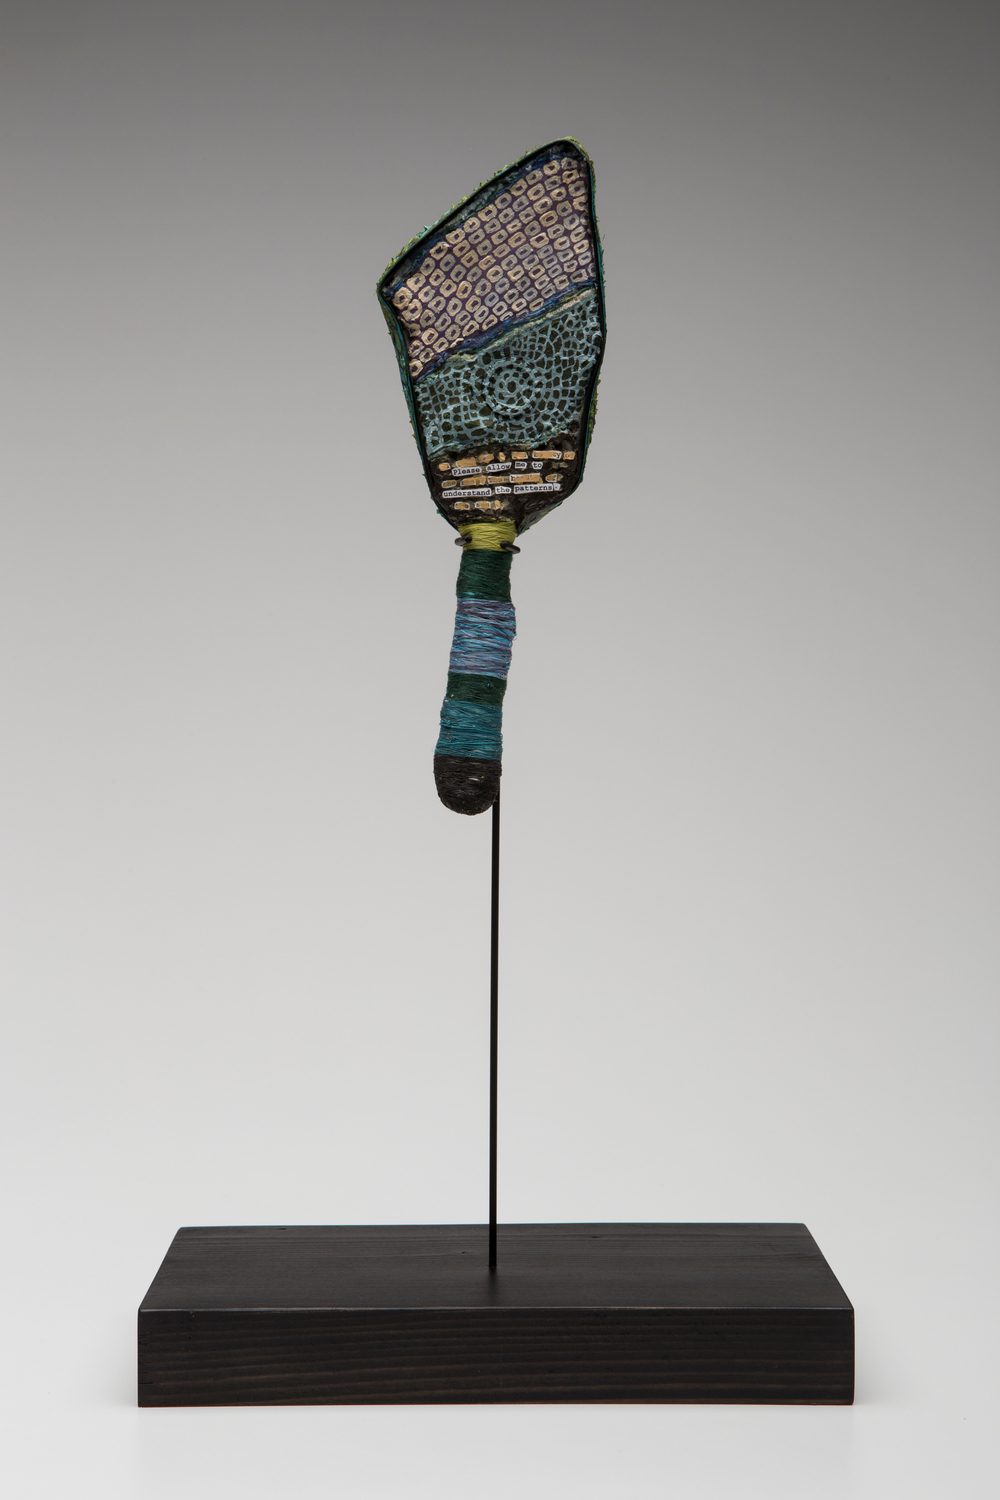 Prayer Paddle: To Understand The Patterns  mixed media, 11.75 by 5 inches, 2007-2014.